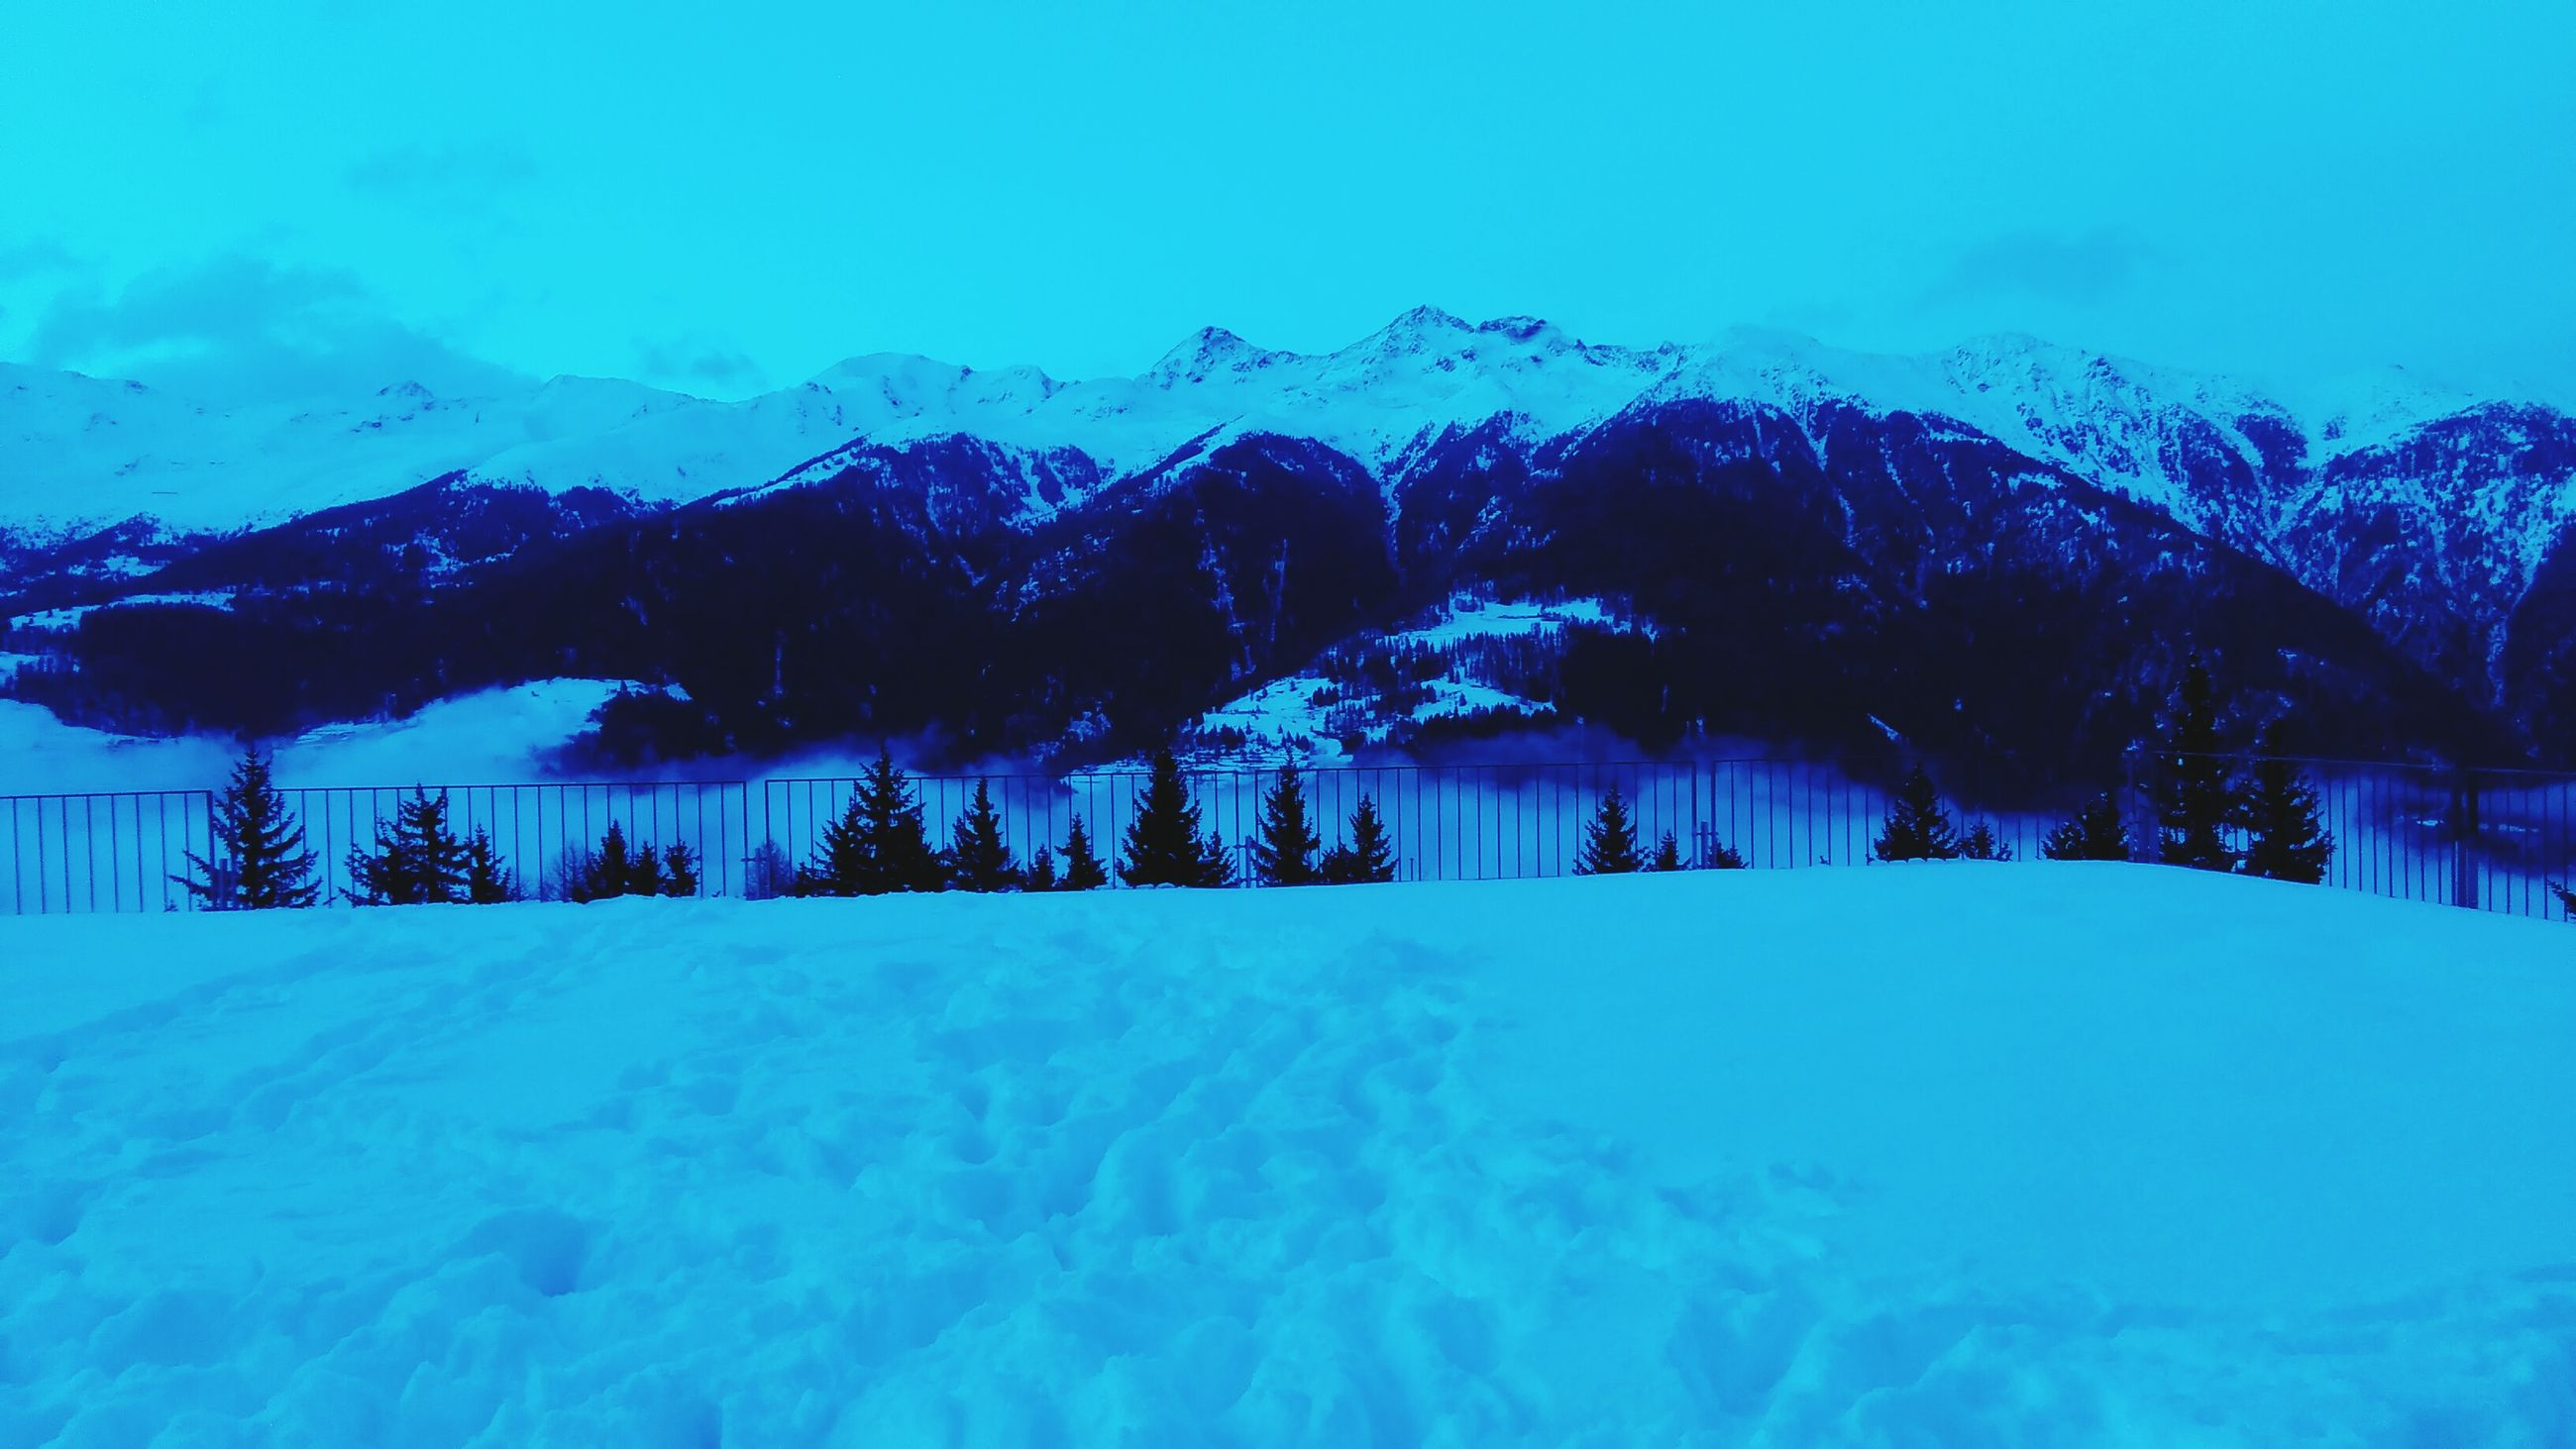 snow, winter, cold temperature, season, mountain, weather, covering, blue, tranquil scene, snowcapped mountain, house, landscape, tranquility, building exterior, beauty in nature, mountain range, frozen, nature, scenics, architecture